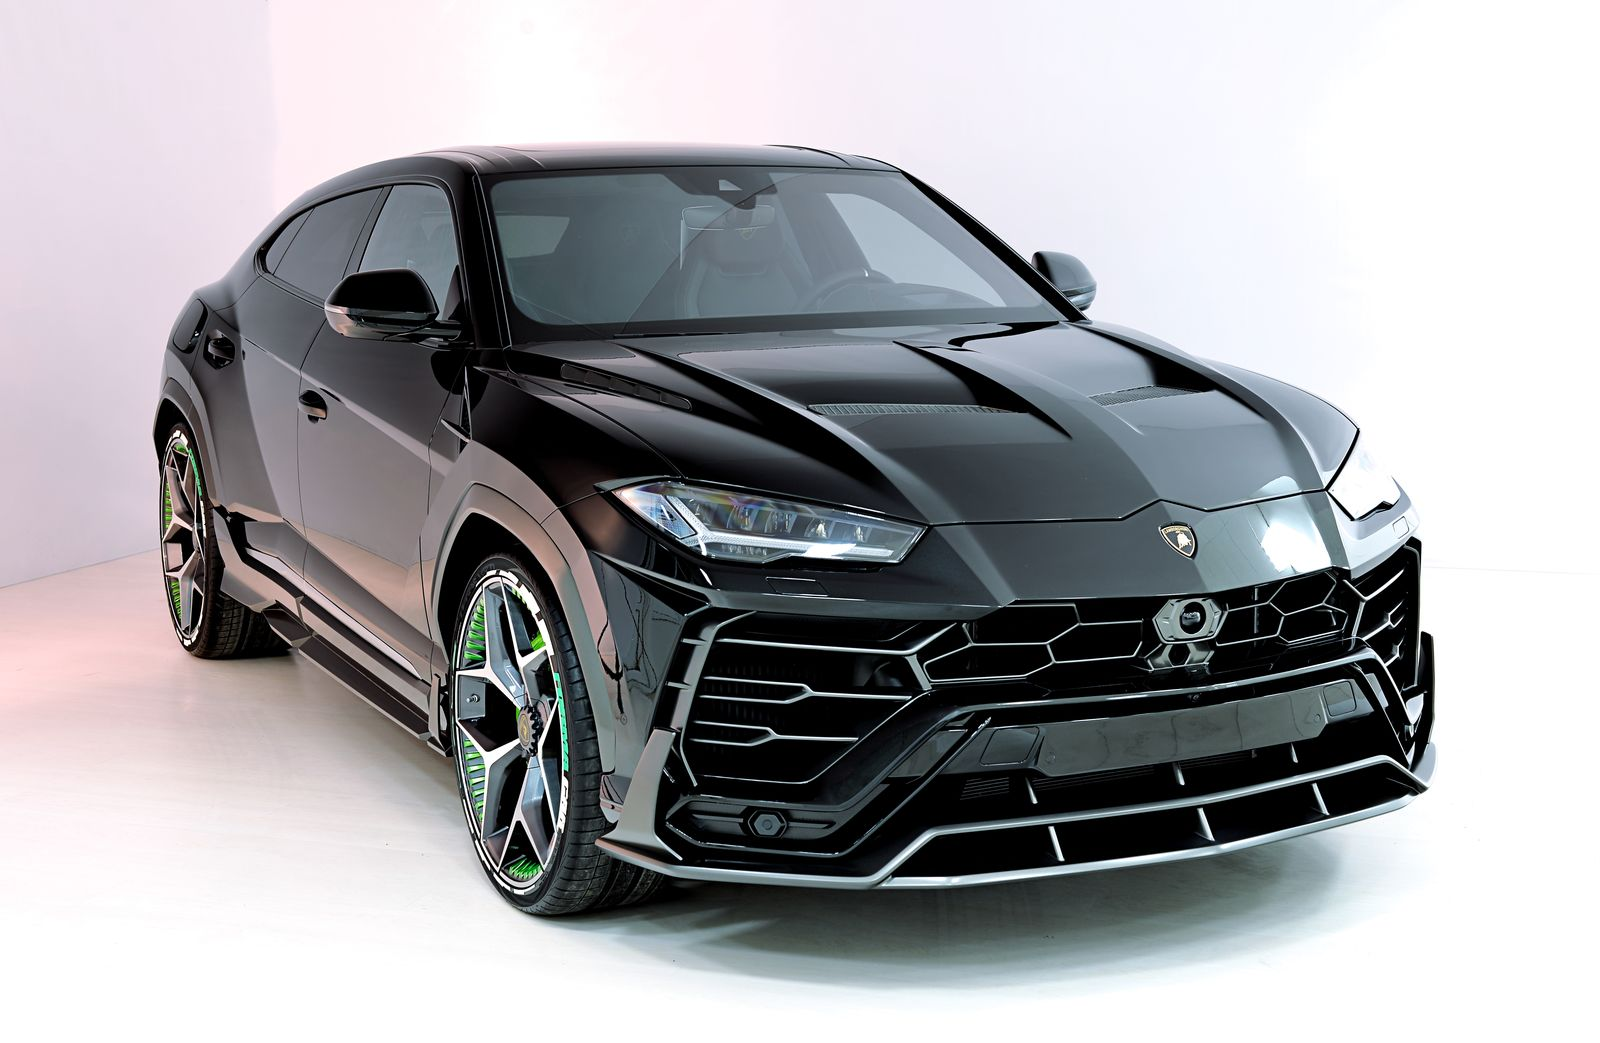 Lamborghini-Urus-by-SCL-Performance-1